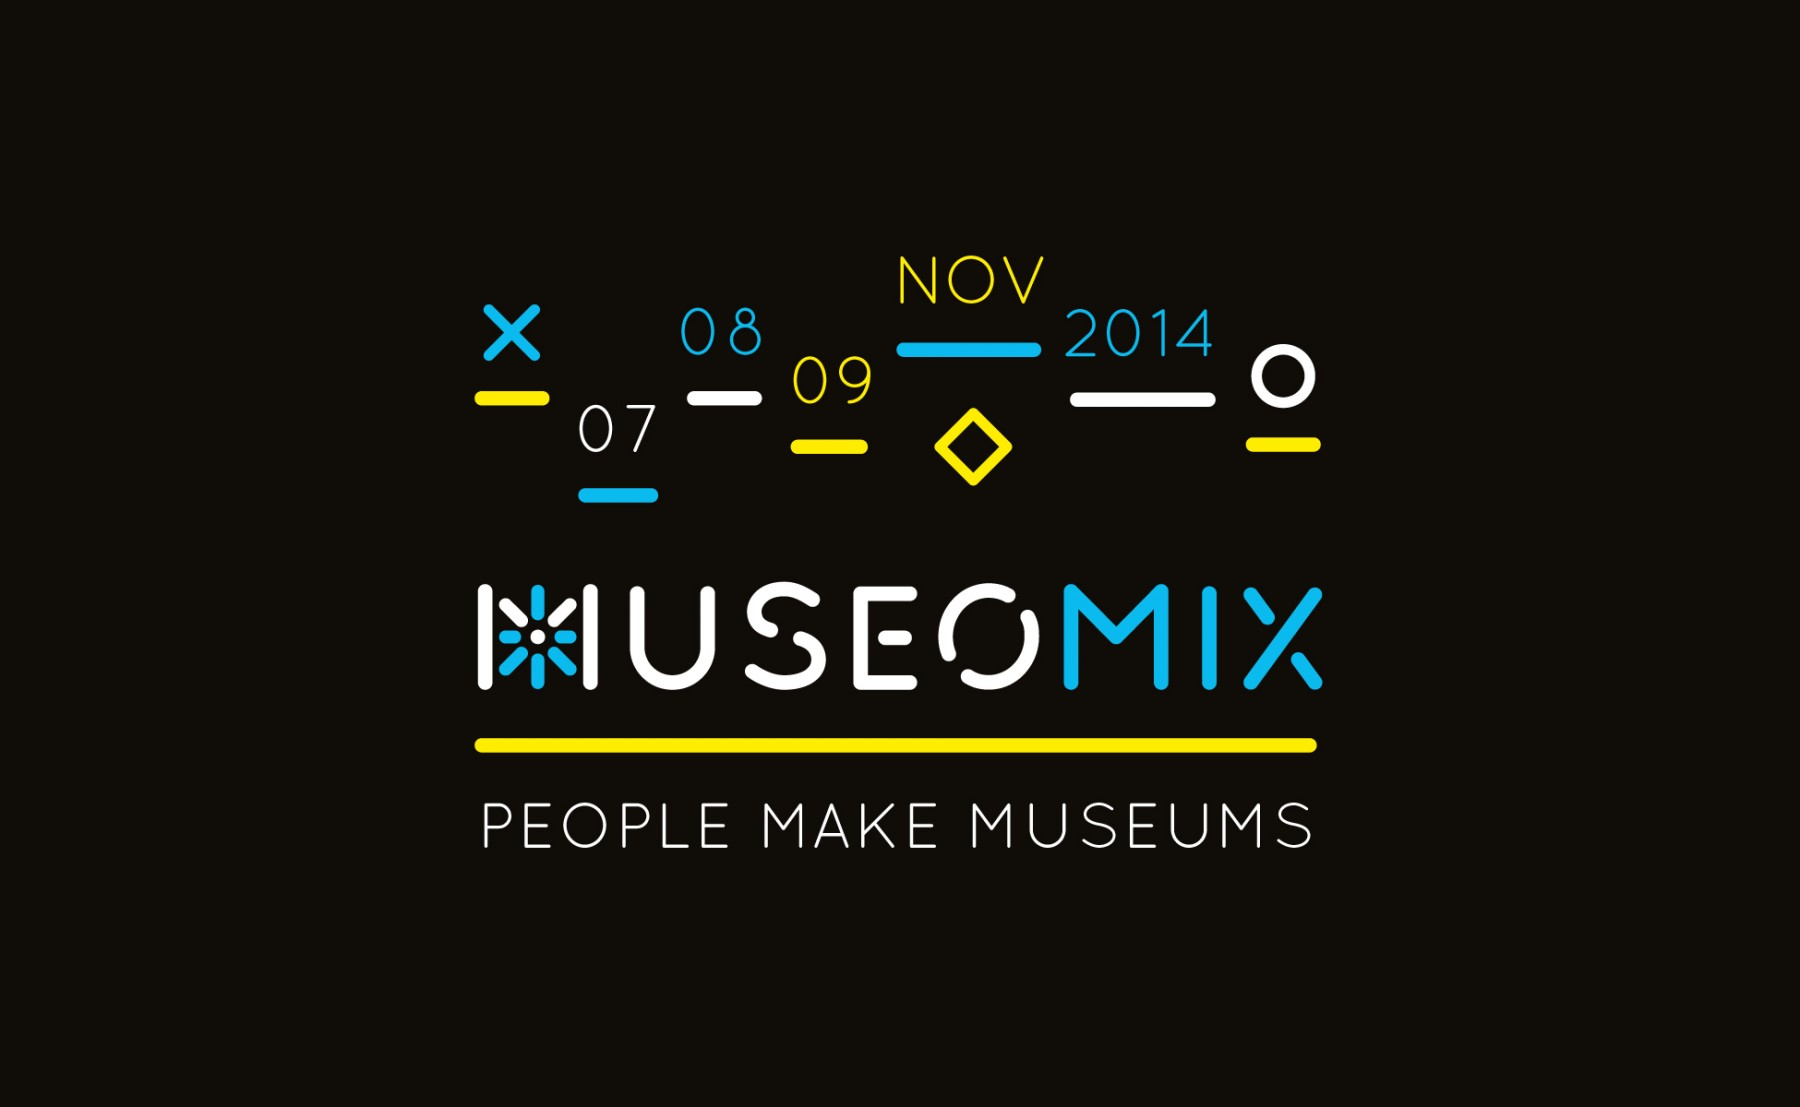 Poster design 2014 - Title Museomix 2014